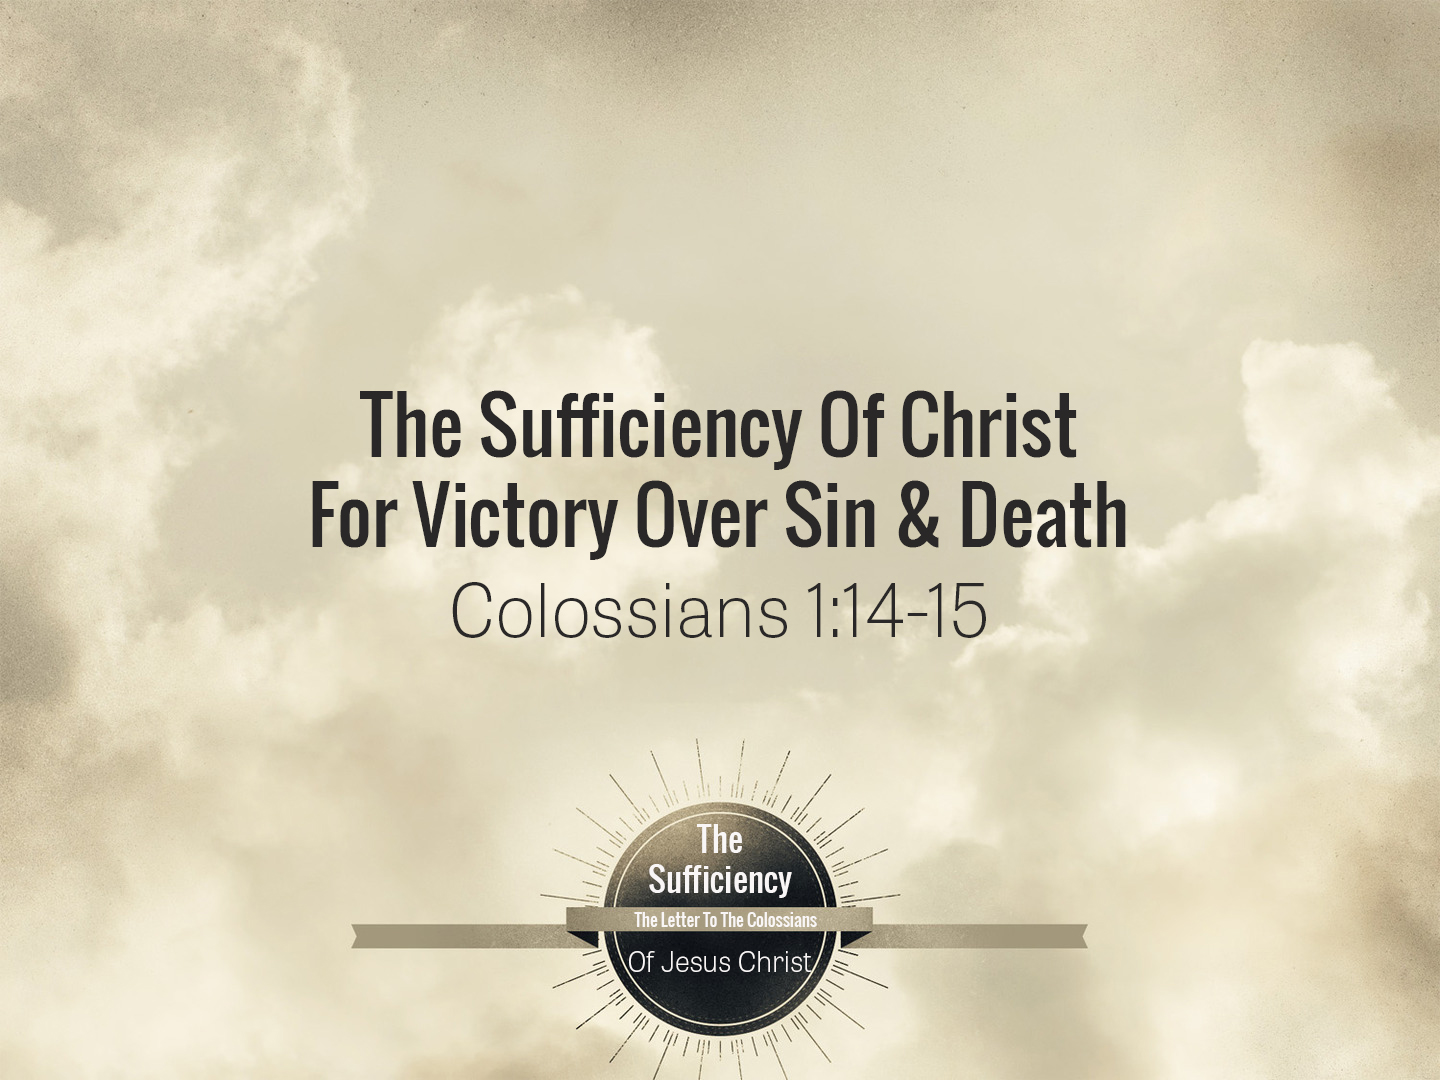 Colossians 2v14-15 The Sufficiency Of Christ For Victory Over Sin And Death